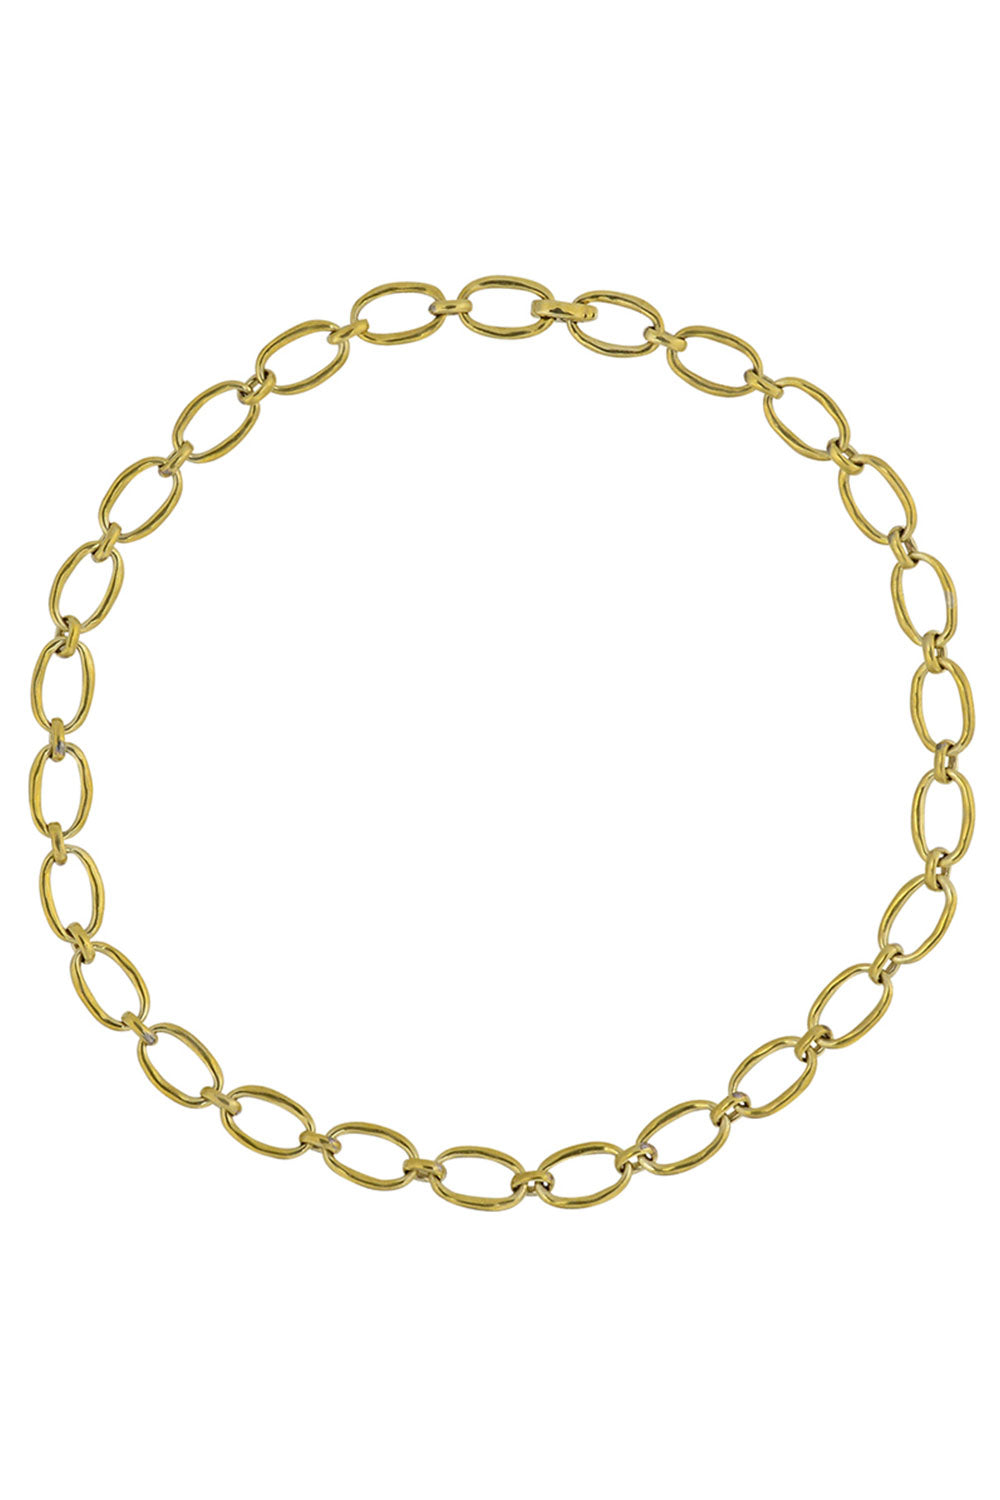 LINK CHAIN NECKLACE | GOLD | BRIE LEON NZ | Jewellery NZ | Black Box Boutique Auckland | Womens Fashion NZ